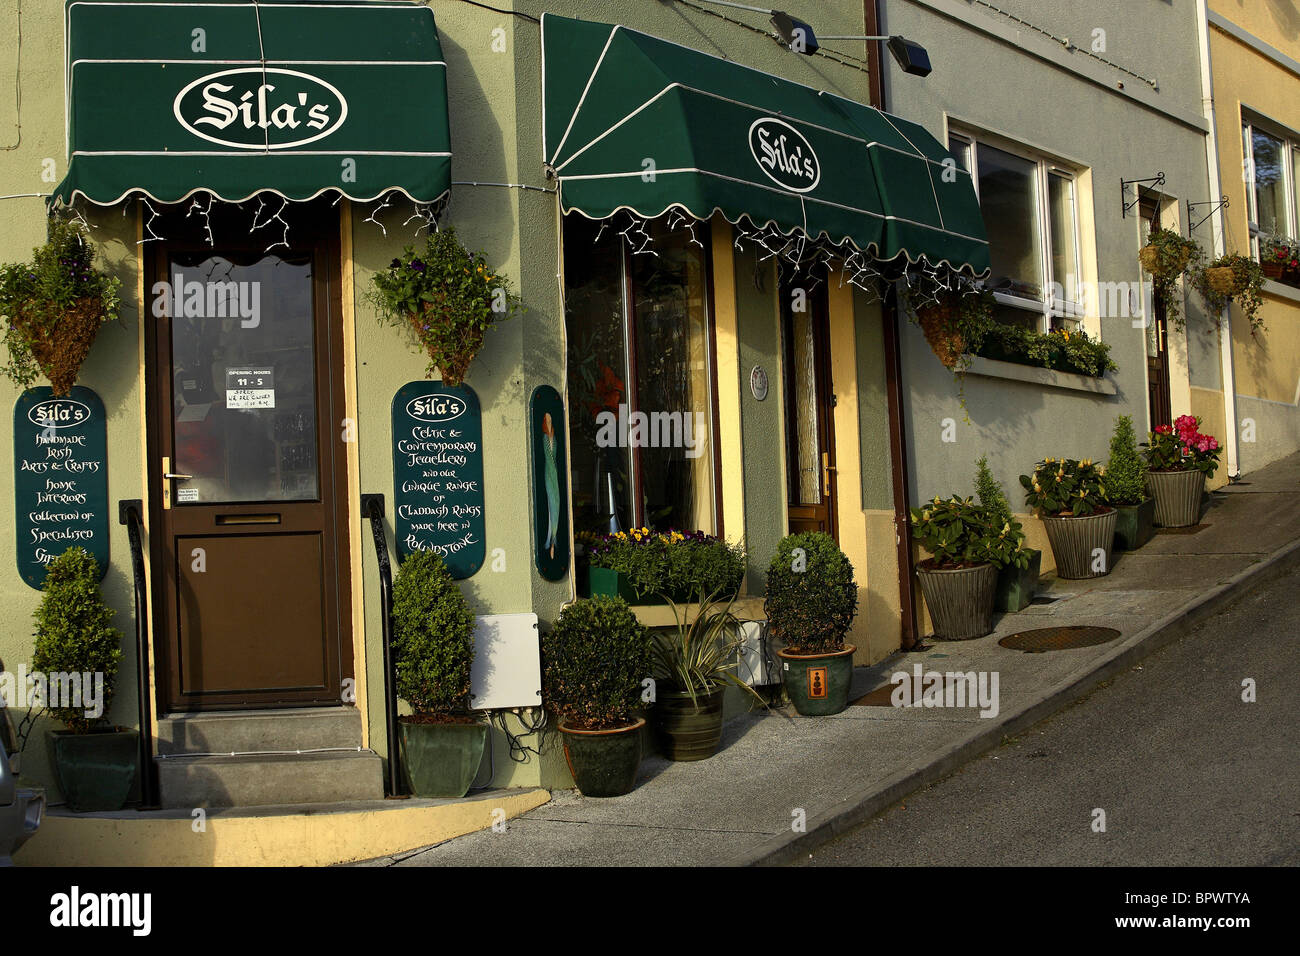 Silas Art and Craft Shop Roundstone, County Galway Ireland - Stock Image